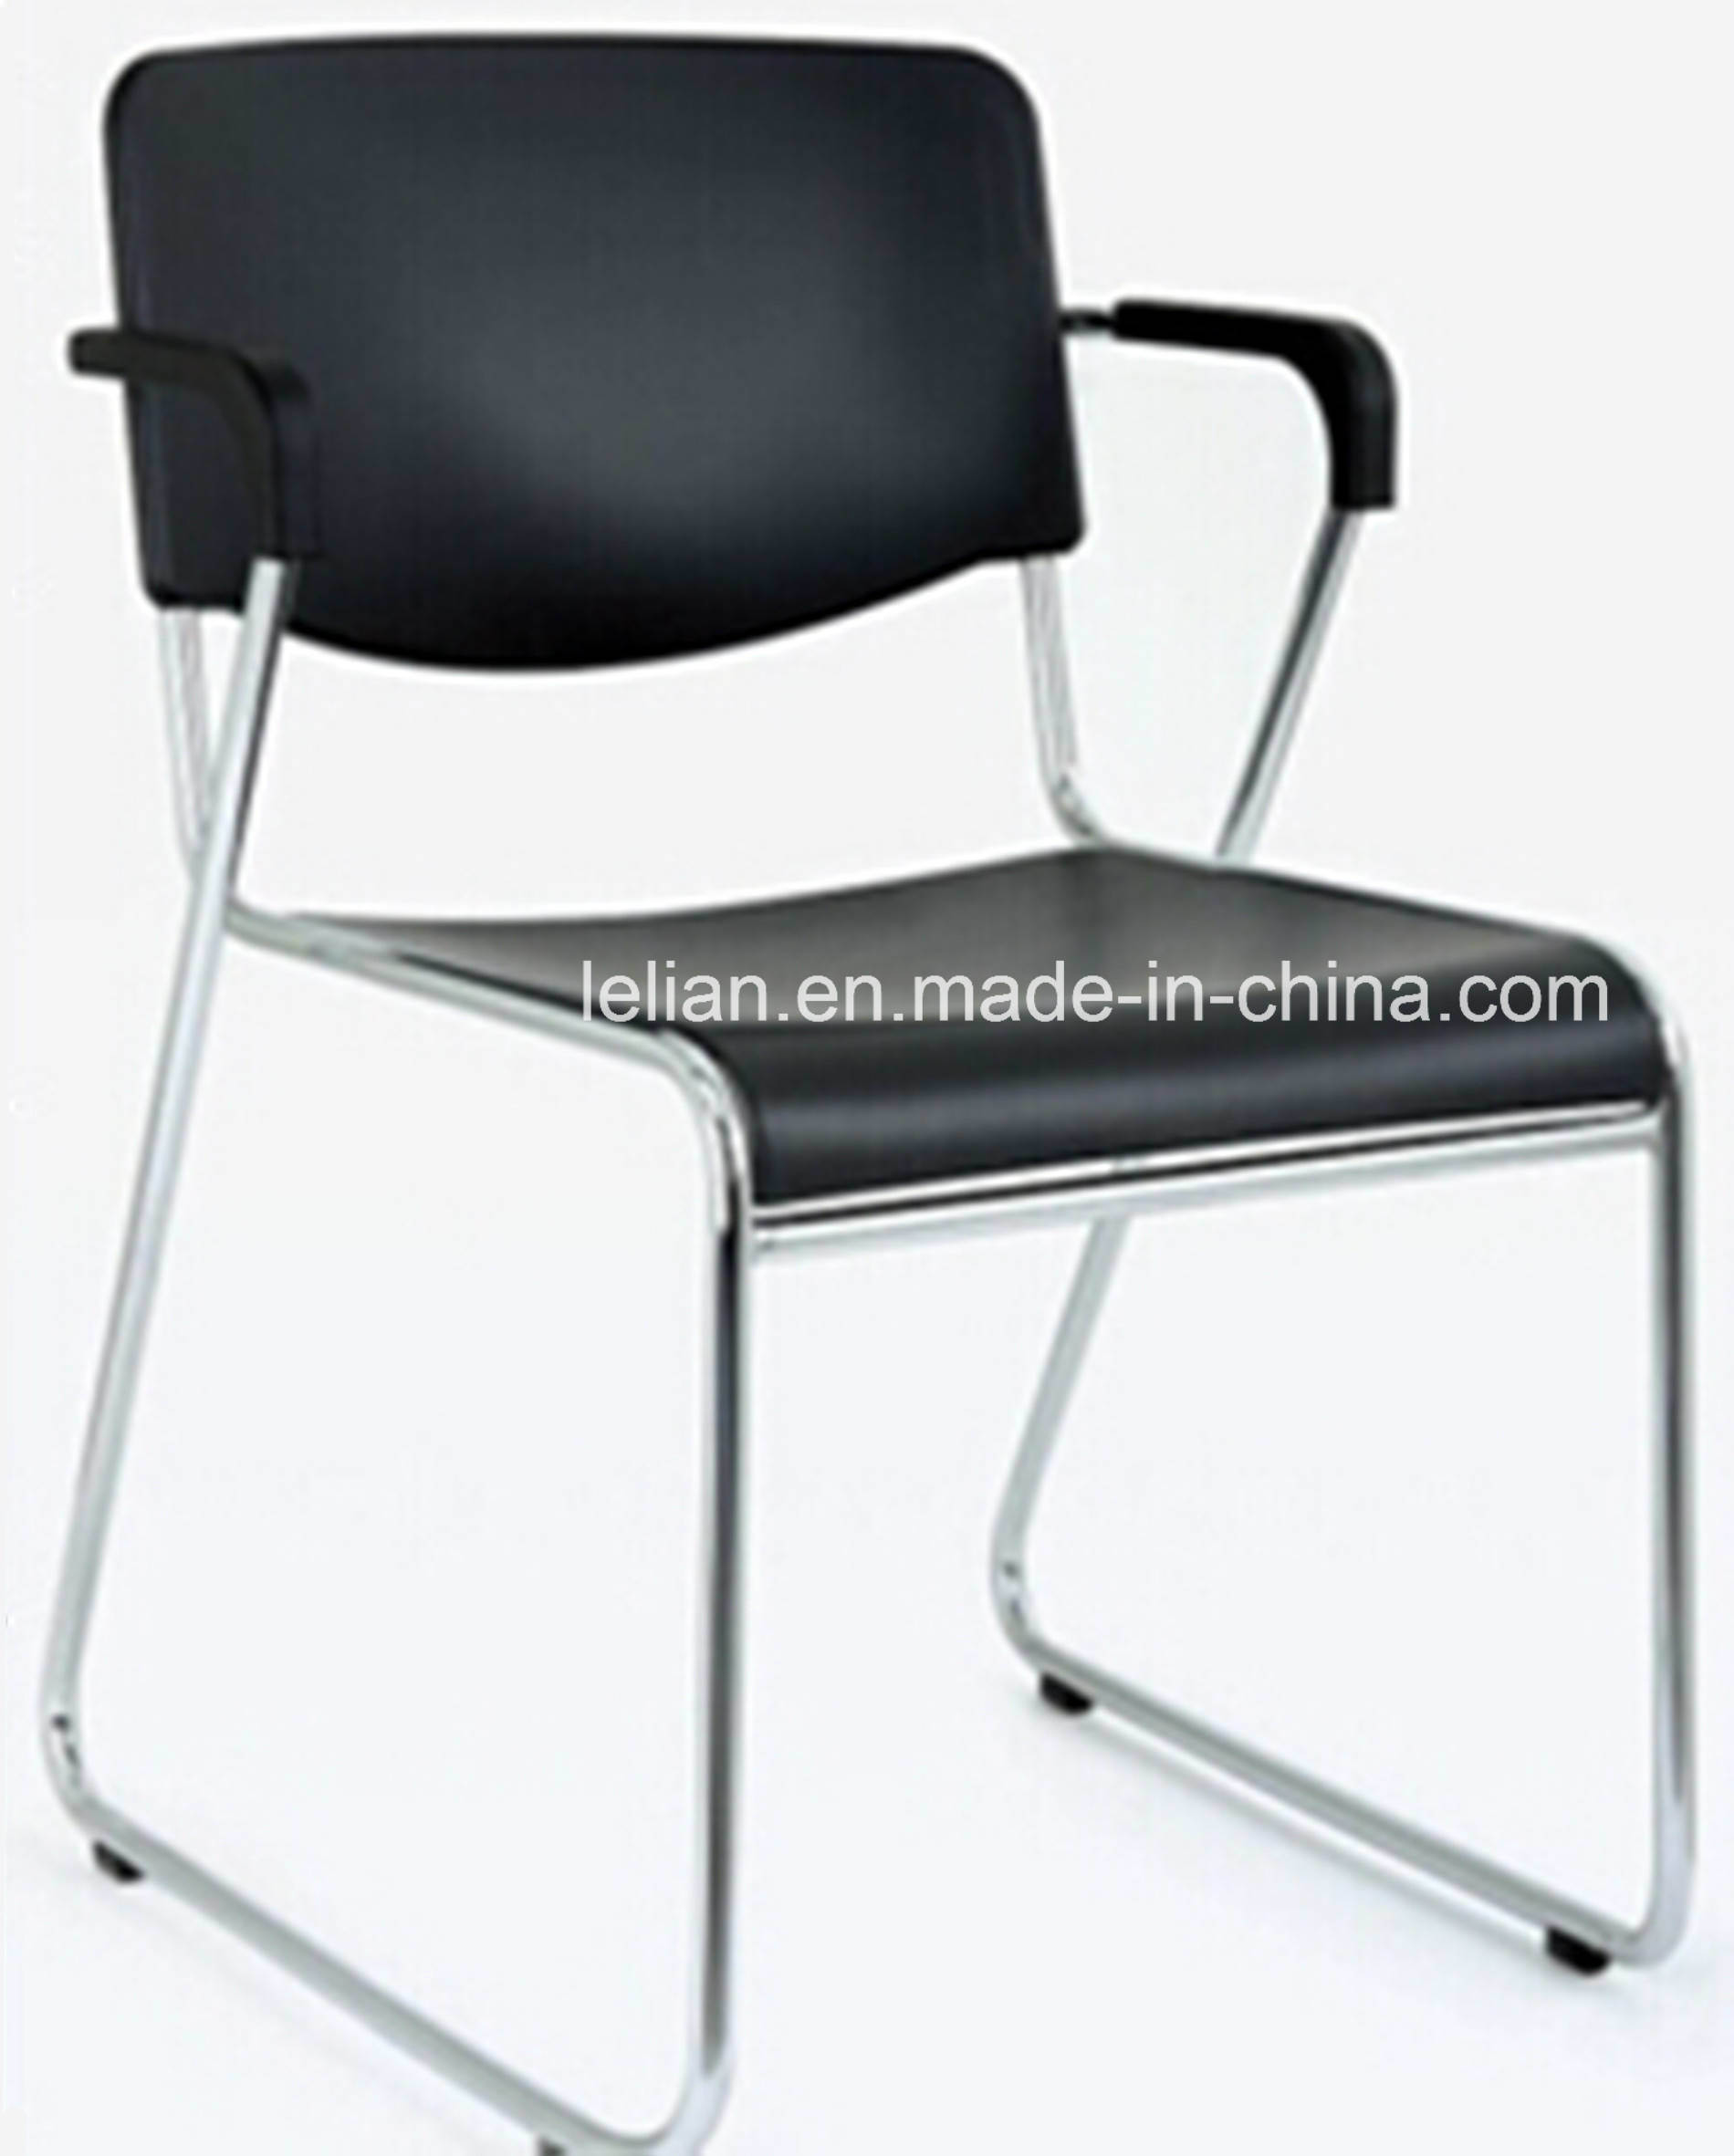 Hot Item Black Stacking Chair With Arms For Public Auditorium Furniture Ll 0055